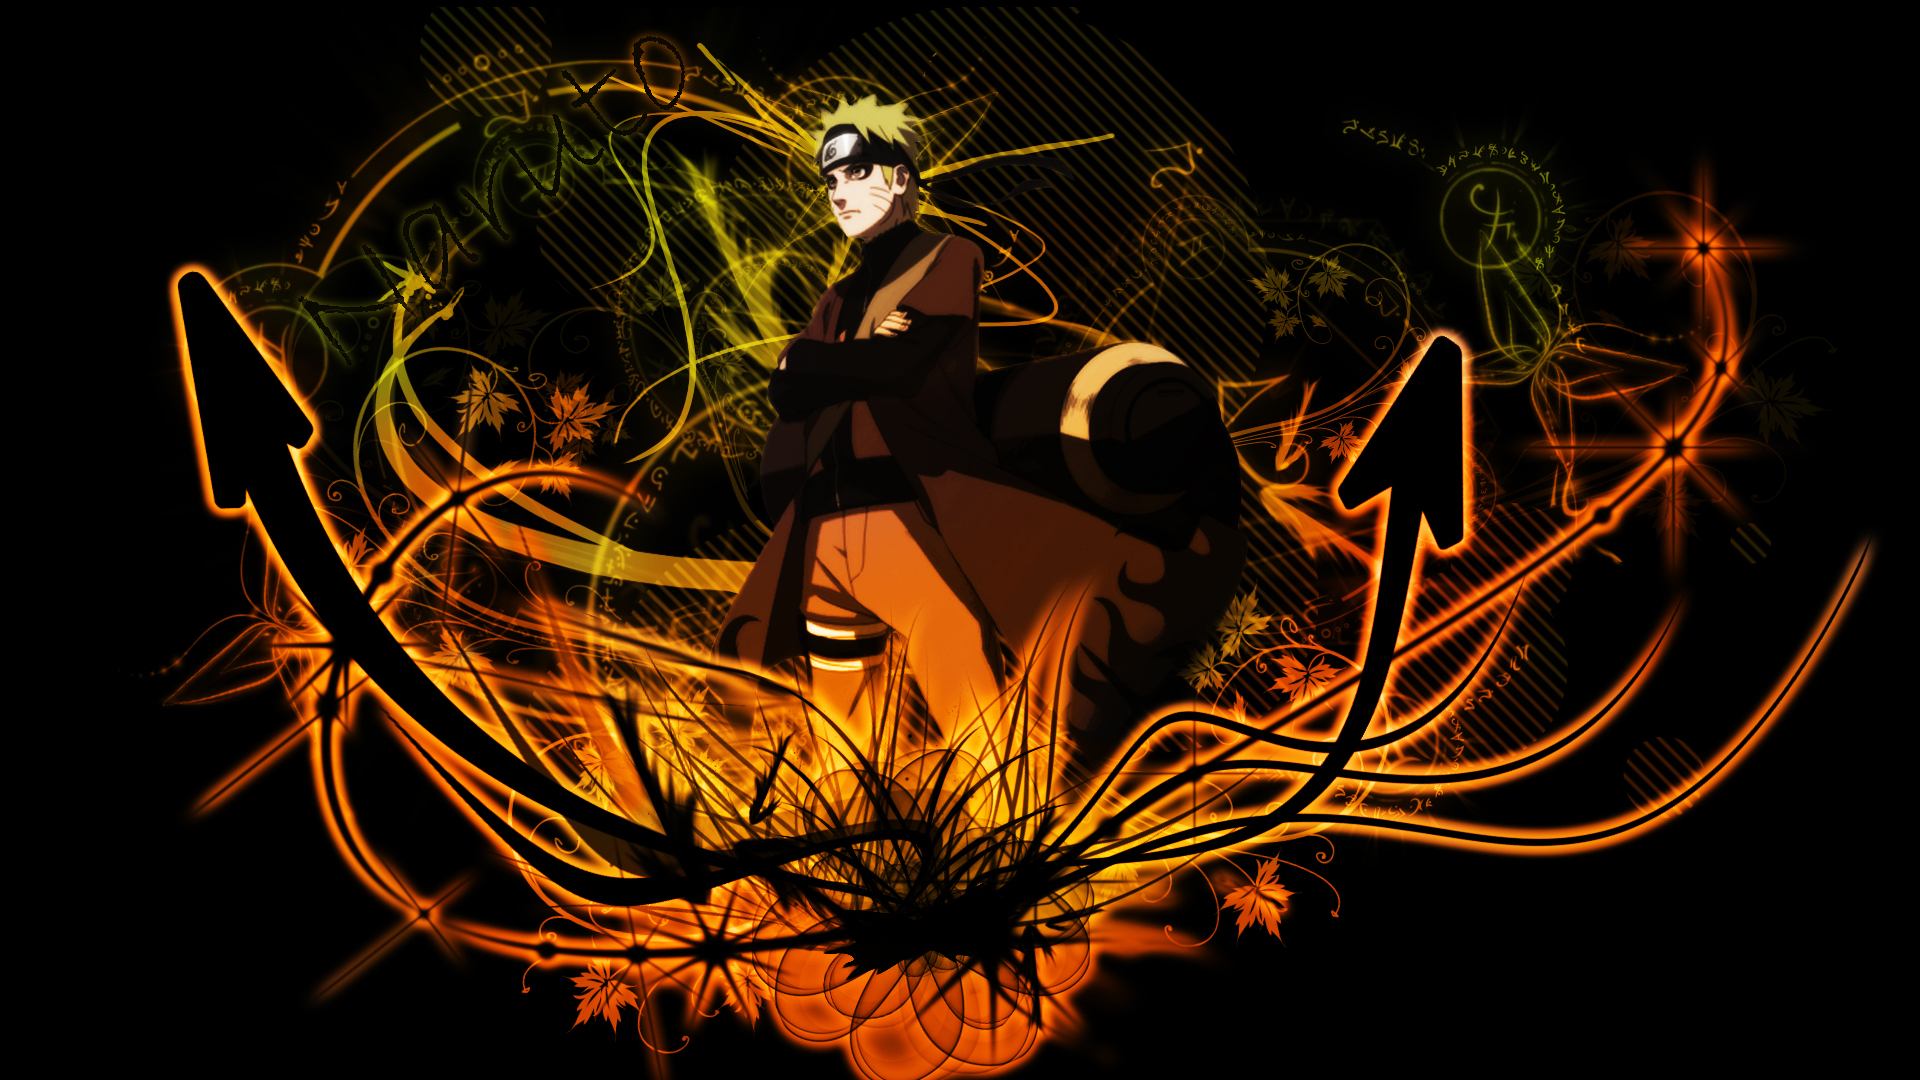 A20 Naruto Uzumaki anime HD Desktop background wallpapers downloads